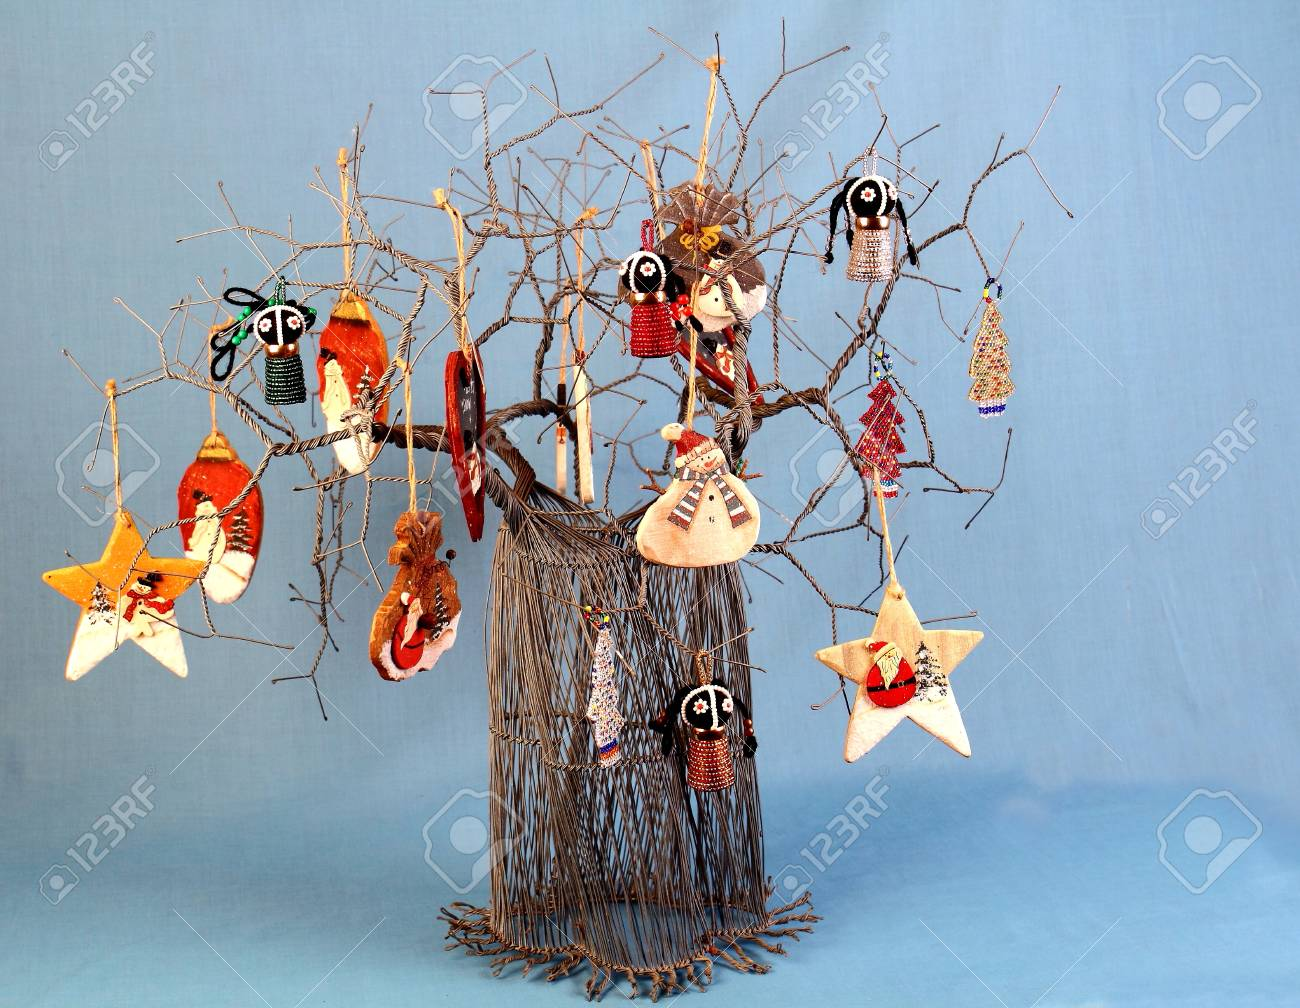 African Christmas.Authentic African Wire Art Christmas Tree Decorated With Handmade